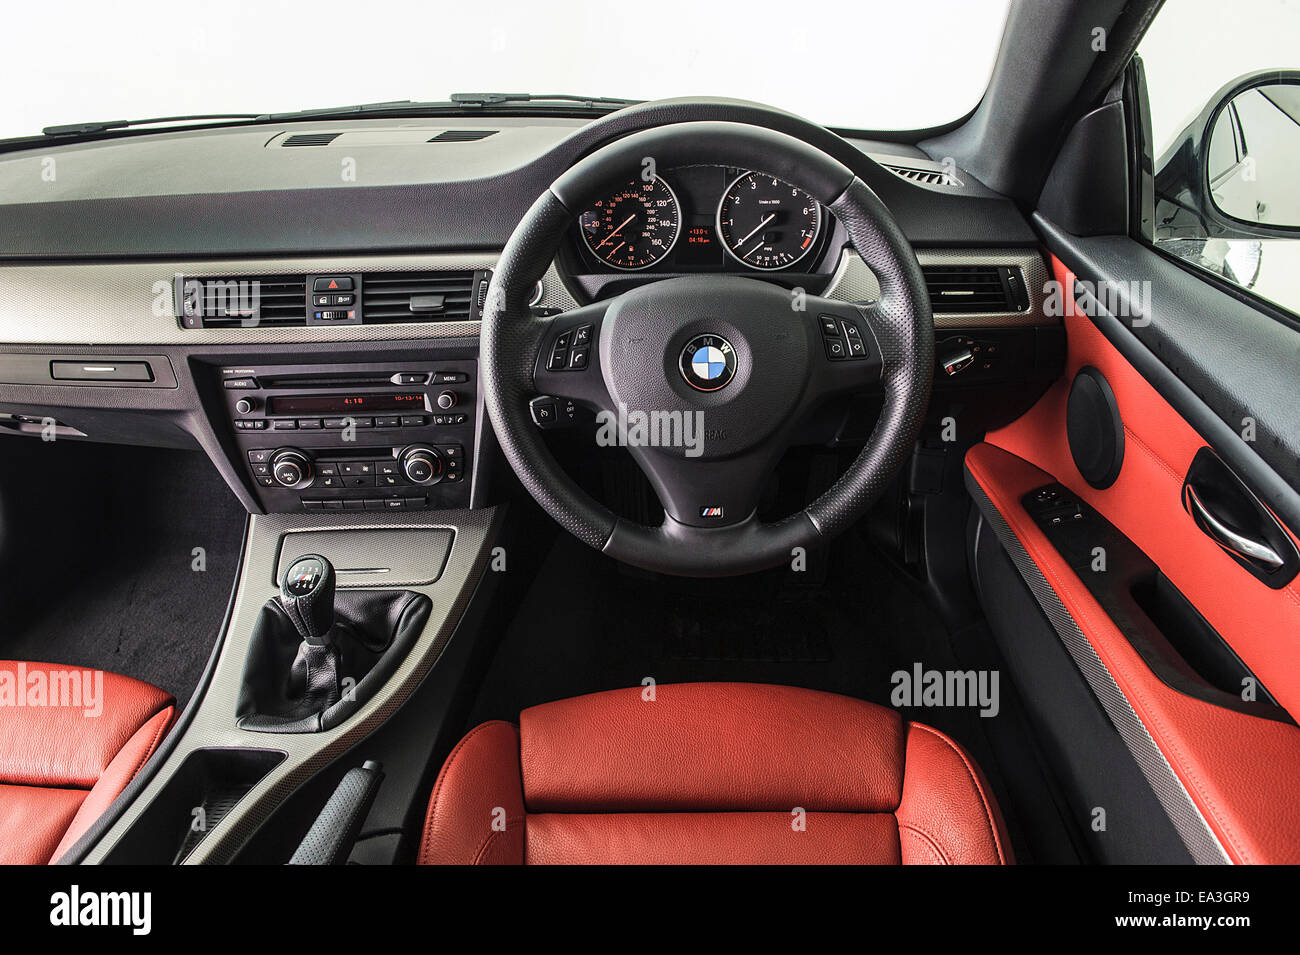 Bmw 3 Series Interior High Resolution Stock Photography And Images Alamy